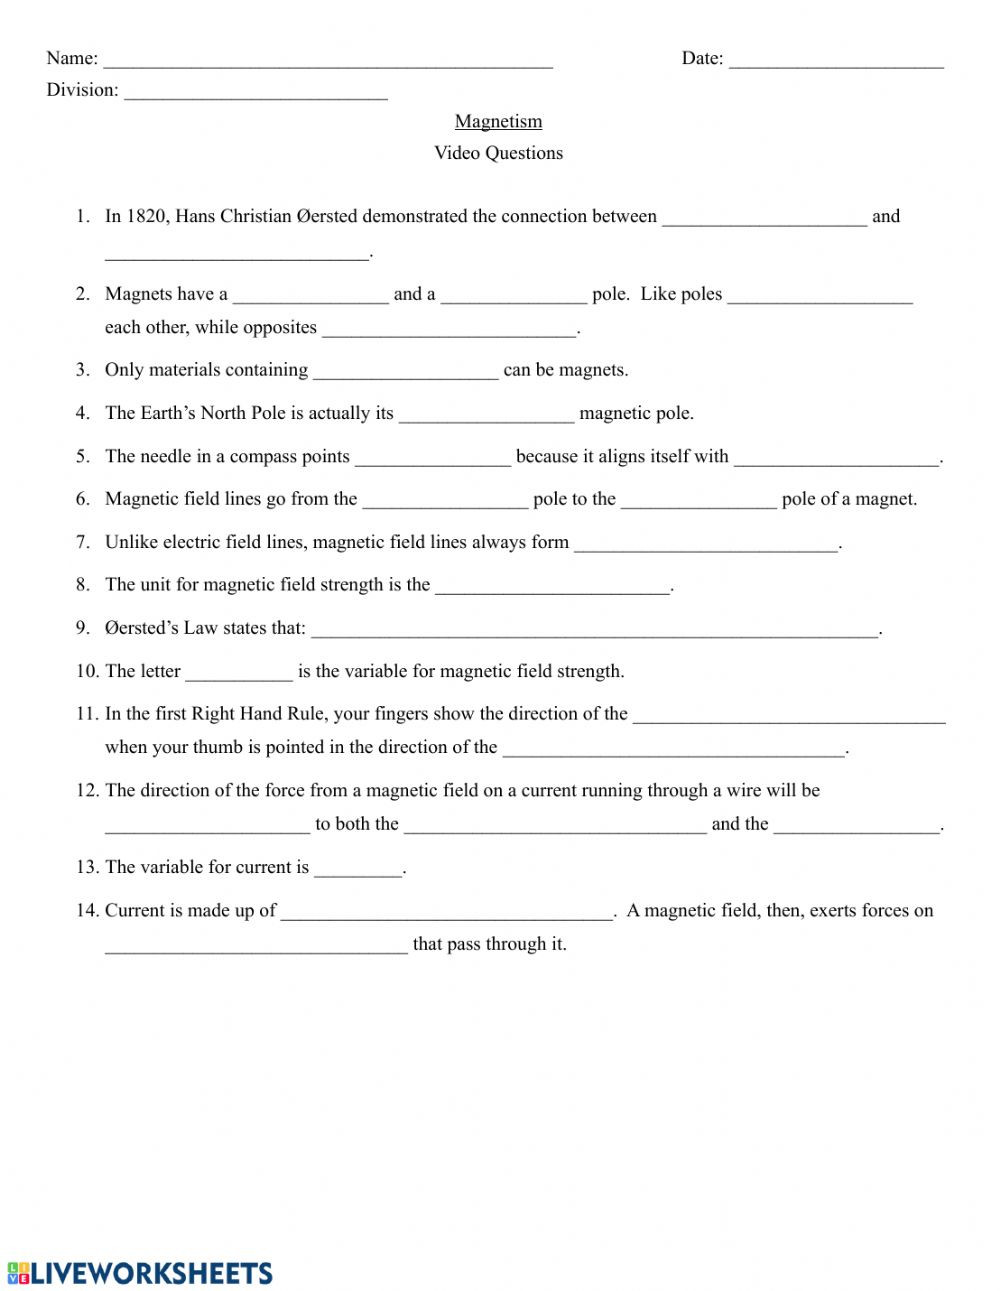 Magnetism Worksheet for High School Crash Course Magnetic Fields Worksheet Interactive Worksheet